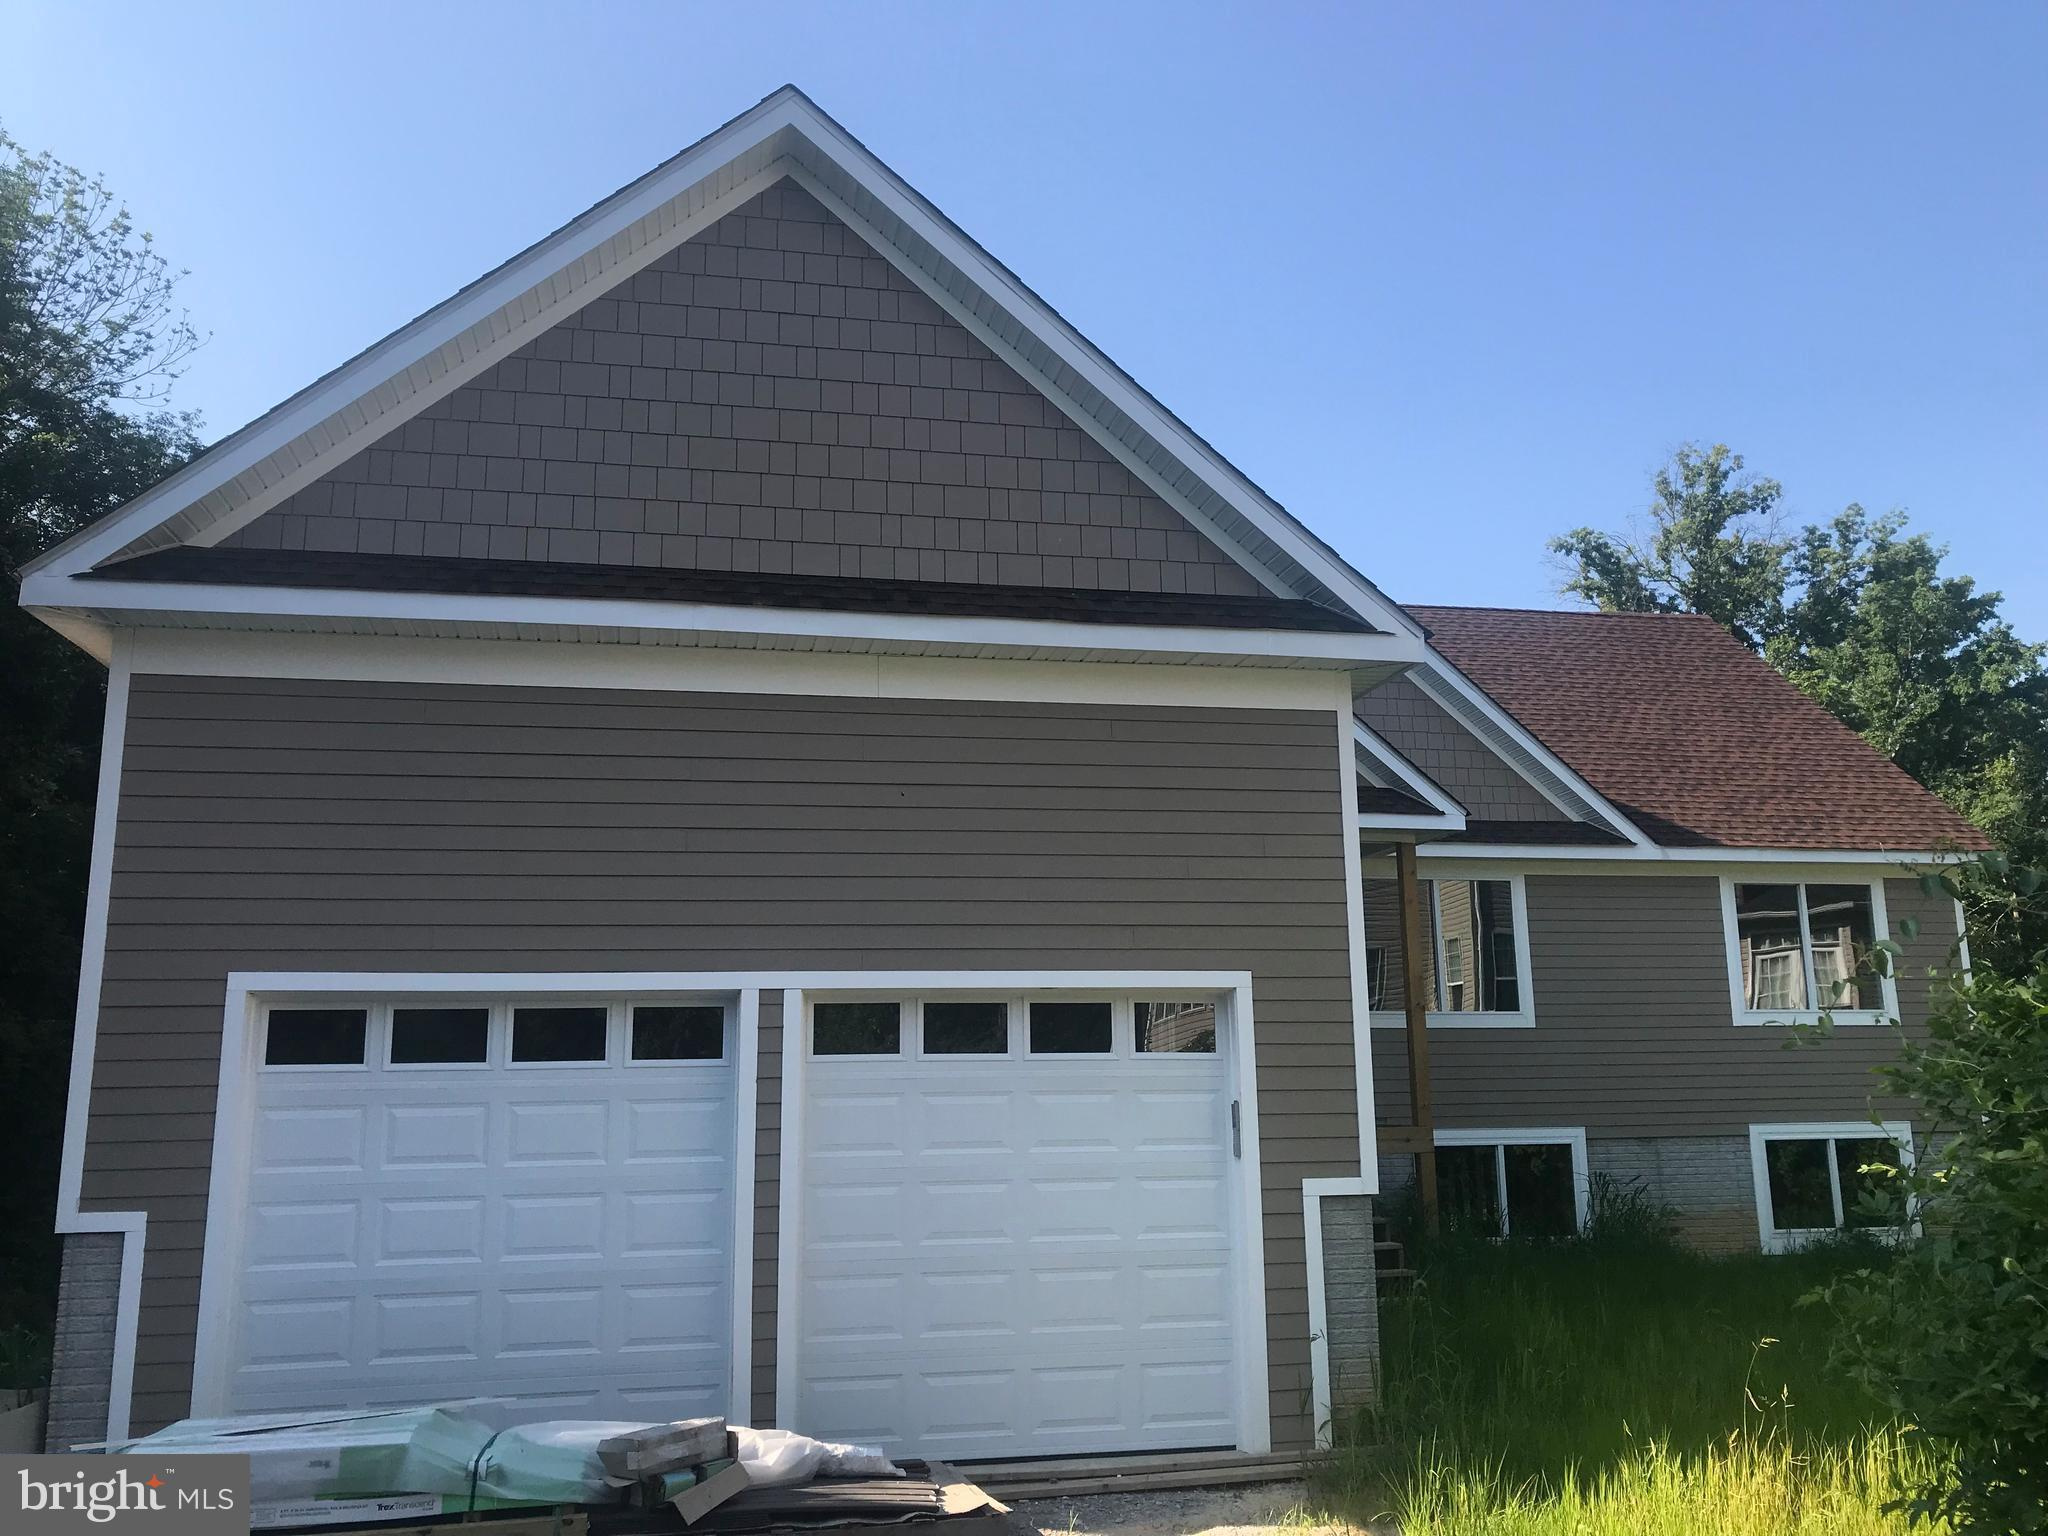 NEW HOME, OVER 3700 SF IN SECLUDED WOODED AREA BACK UPS TO COUNTY PARK LAND. CONSTRUCTION ALMOST COMPLETED. BUY NOW AND SELECT FINAL FEATURES. OPEN-STYLE DESGN WITH SPACIOUS DECK AND PATIO